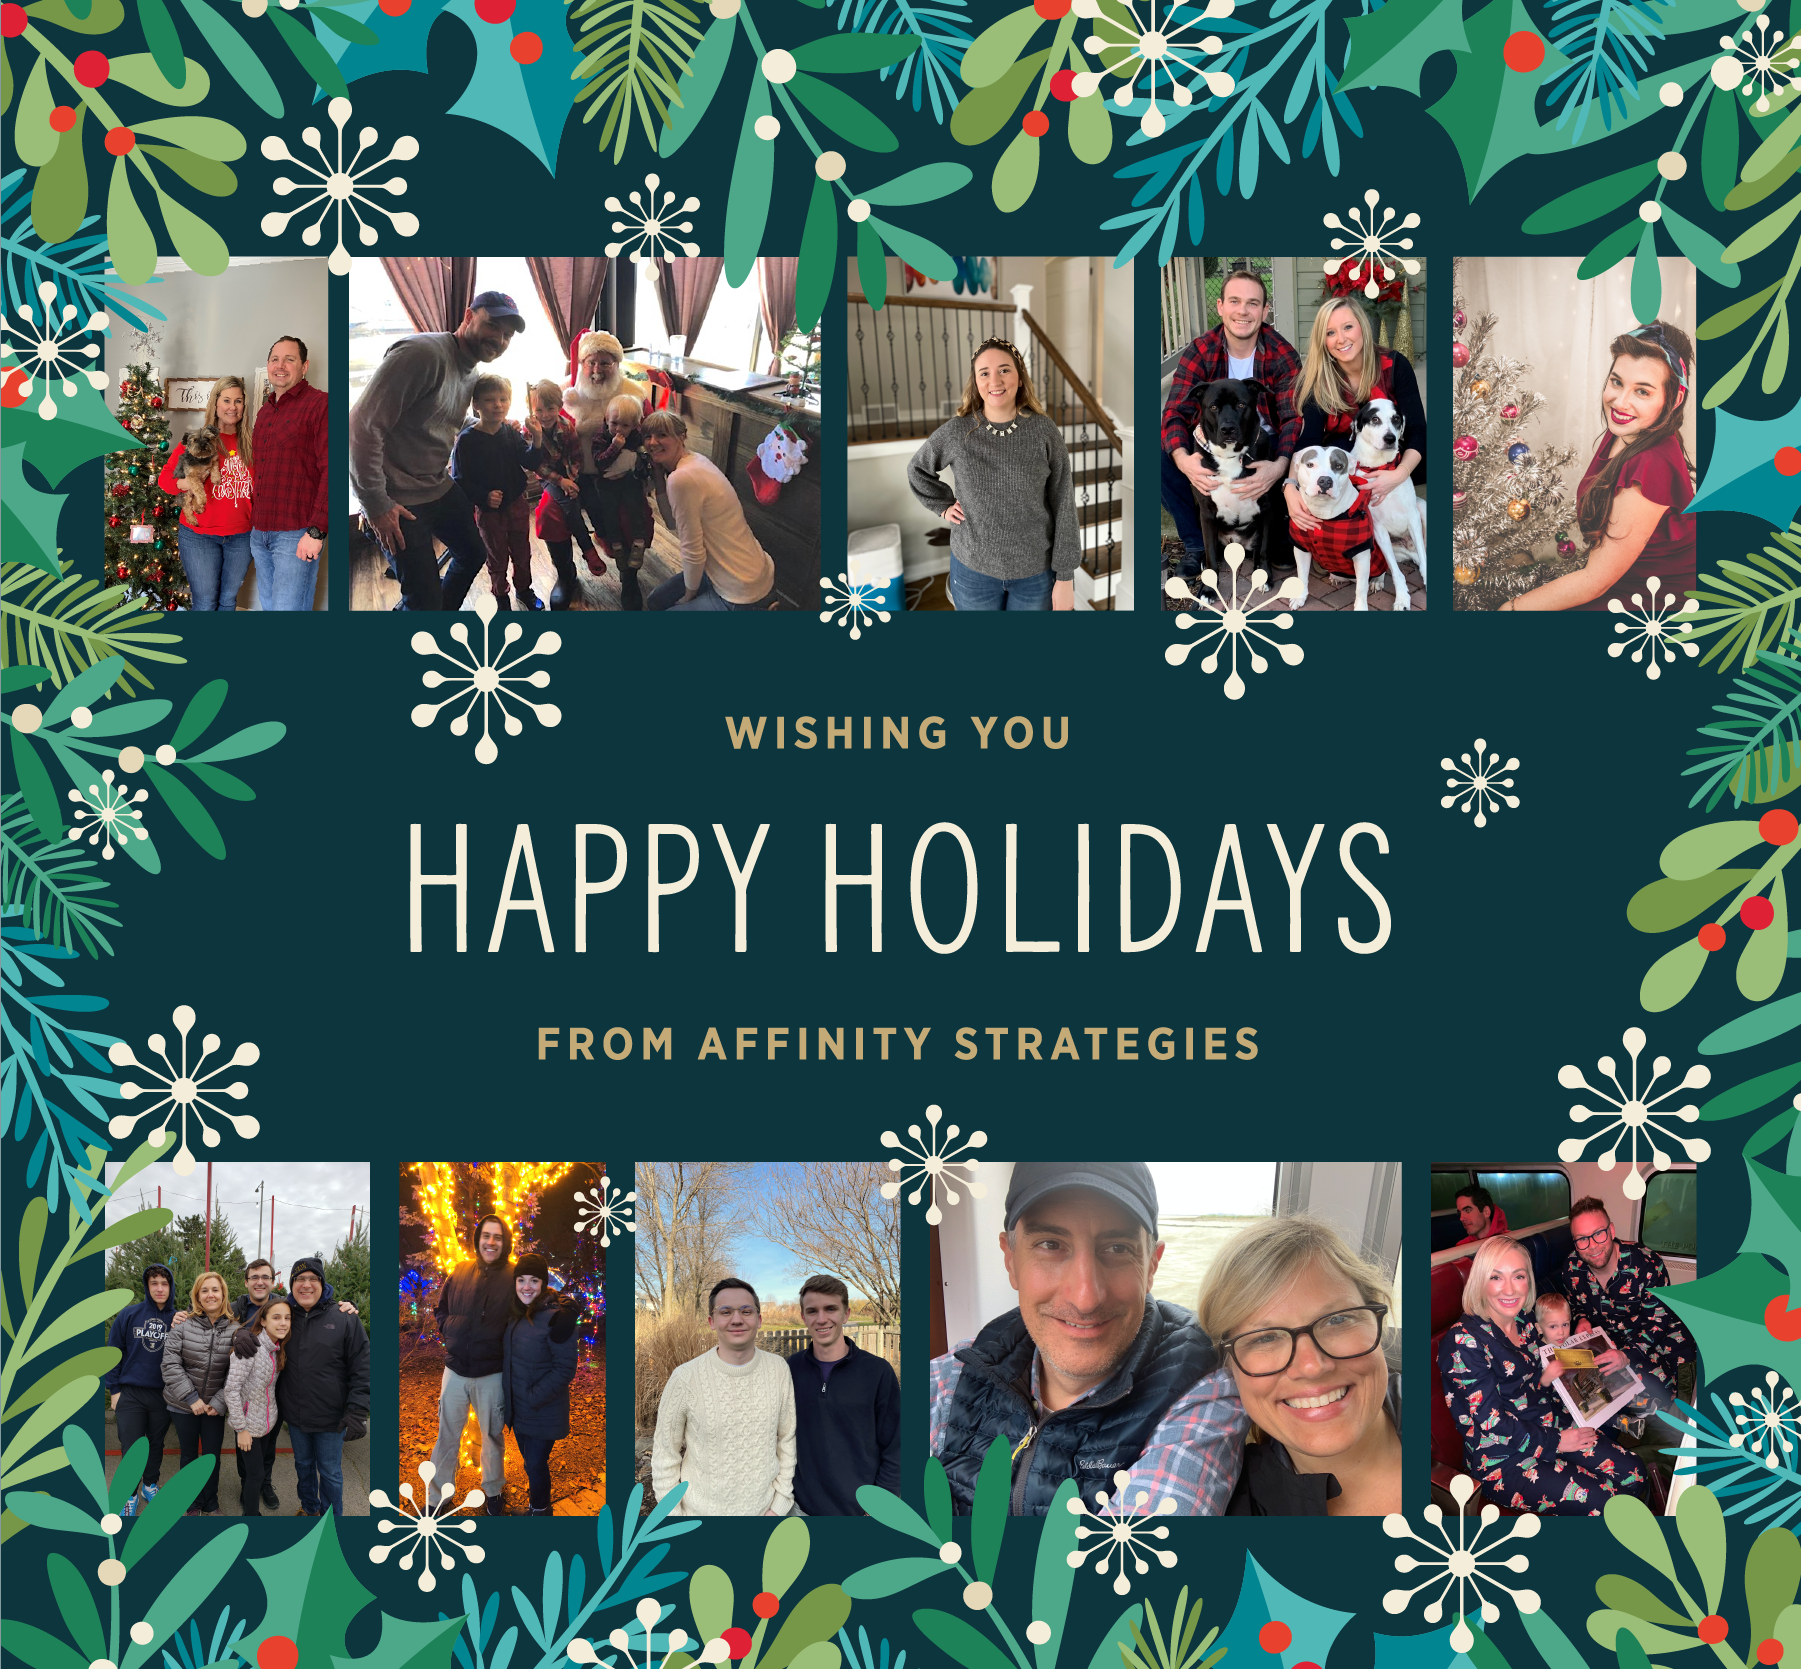 A Holiday Note from the Affinity Strategies Team